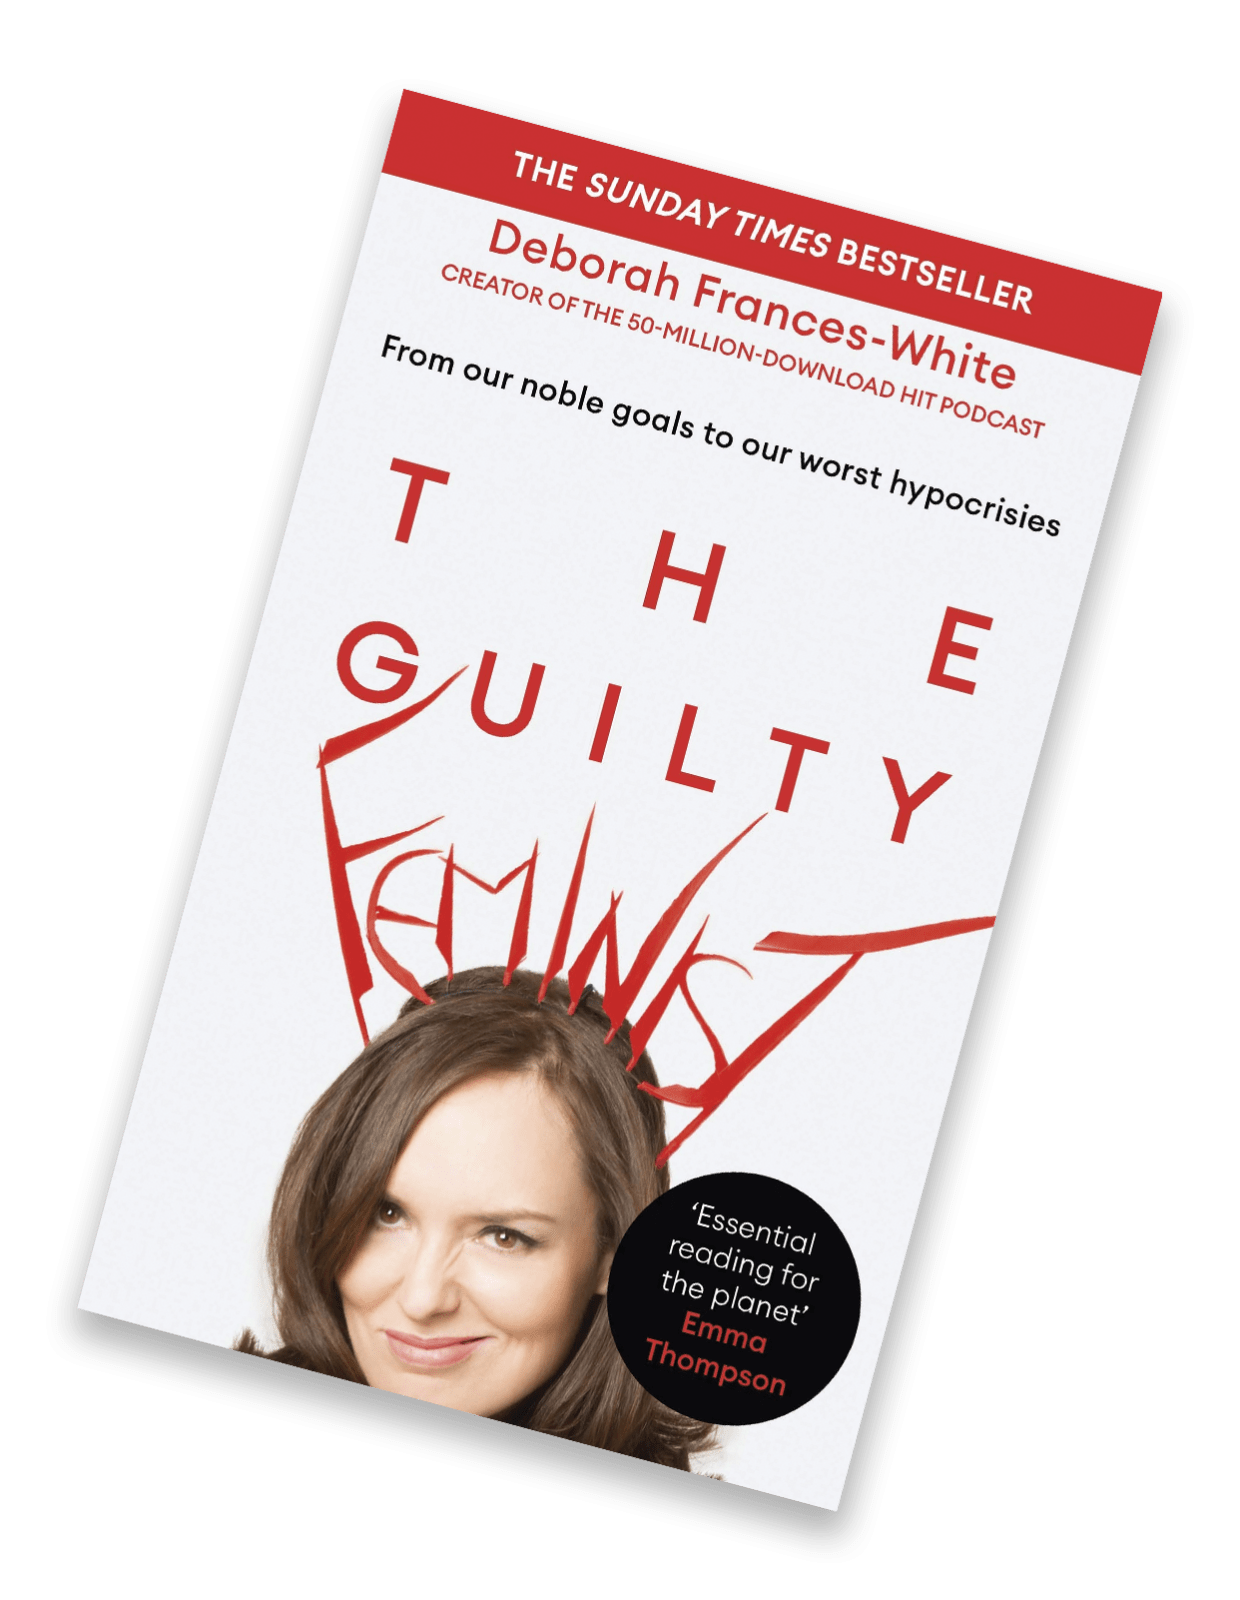 The Guilty Feminist – The comedy podcast hosted by Deborah Frances-White